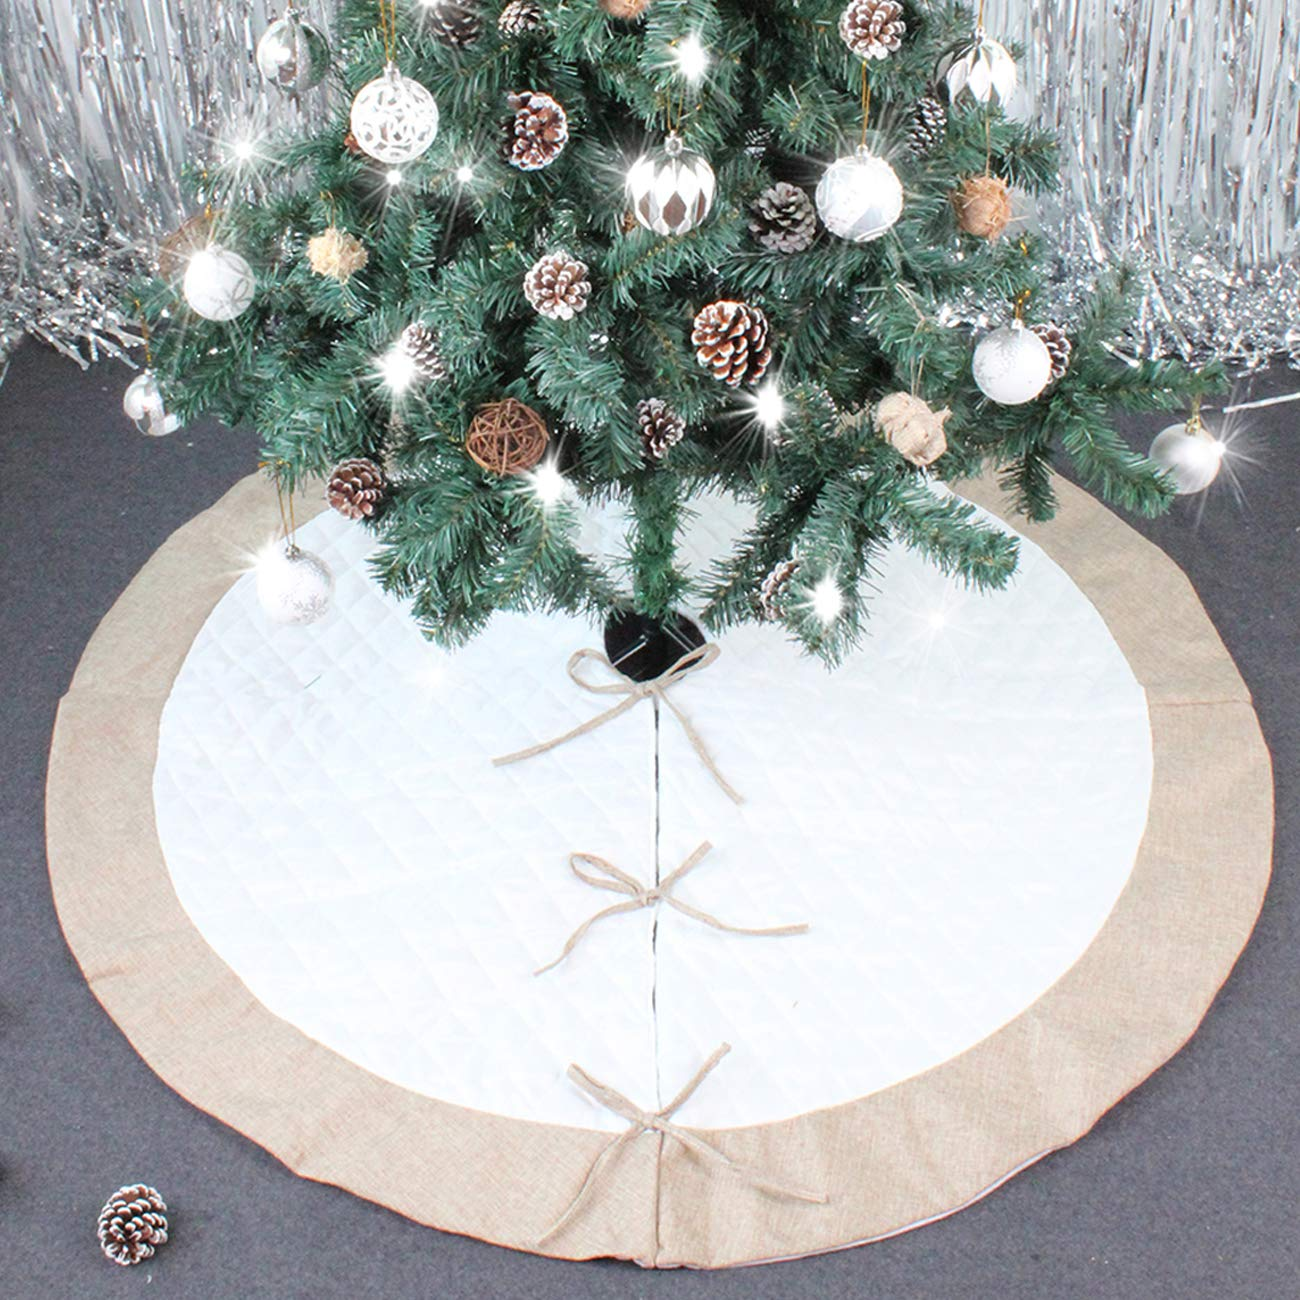 ShiyiUP Red Christmas Tree Decoration Skirt with Bows for Merry Christmas Party Decoration